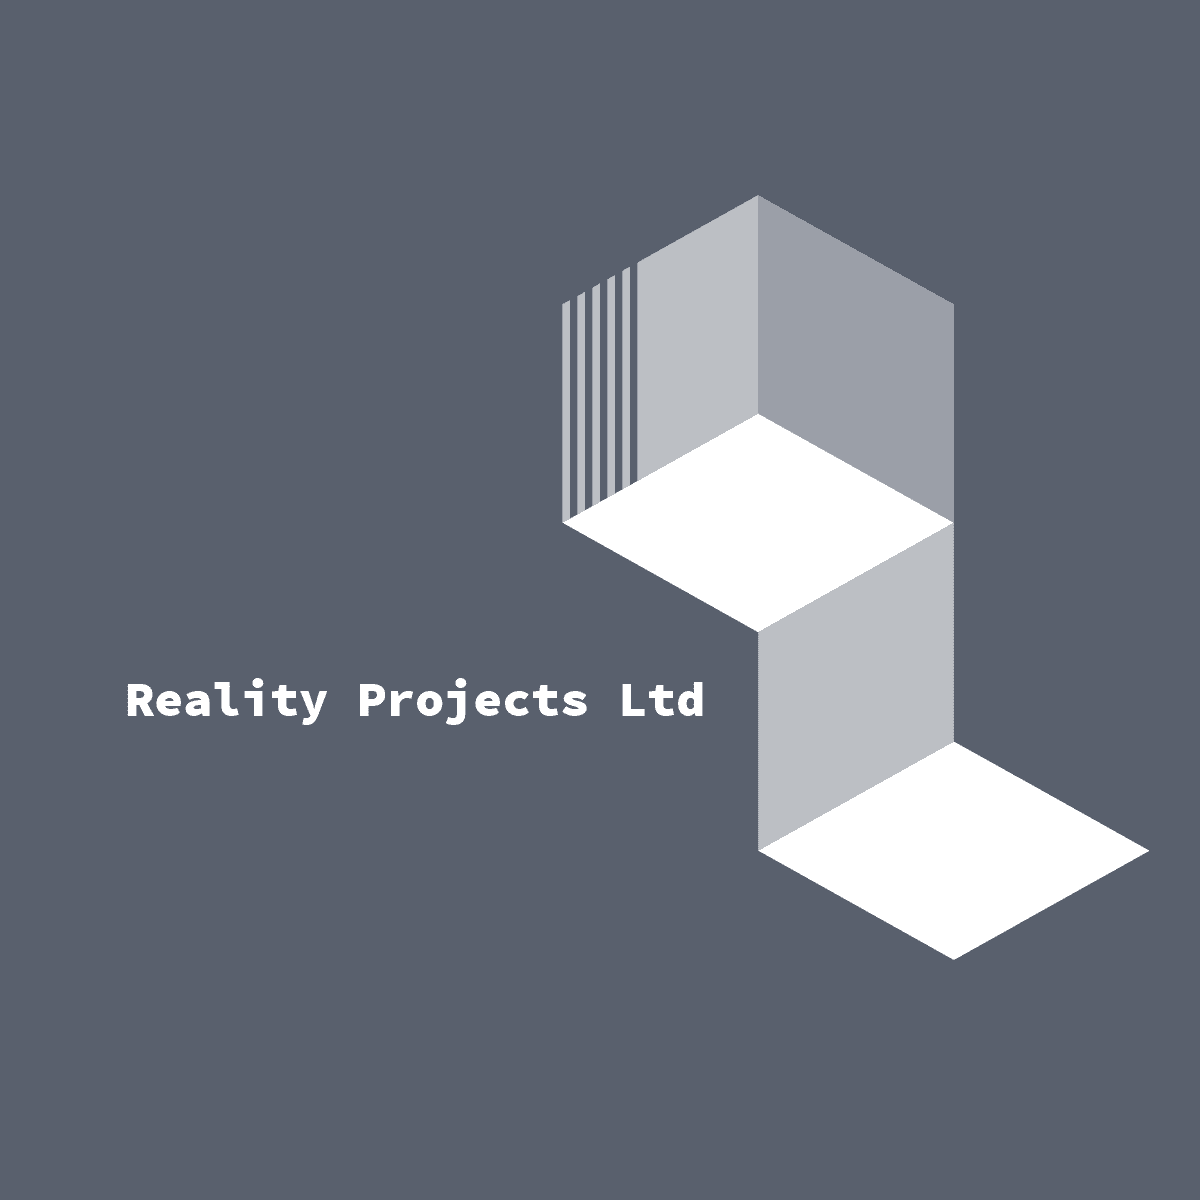 Reality Projects Ltd